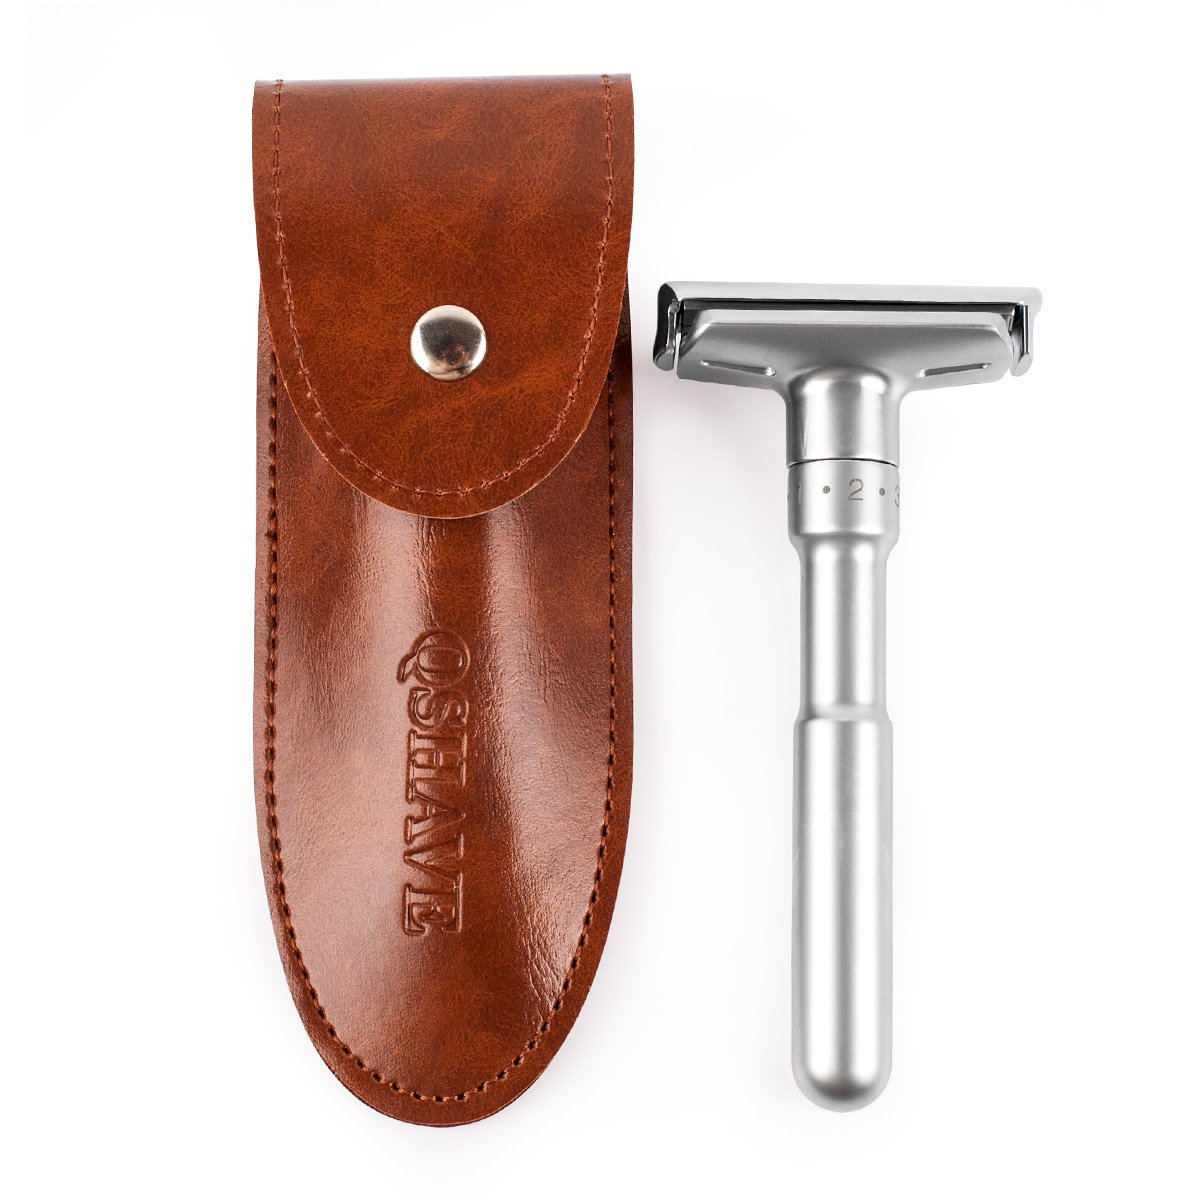 QSHAVE PU Leather Razor Travel Case Suitable for All Merkur MINGSHI WEISHI Parker Safety Razor, Brown